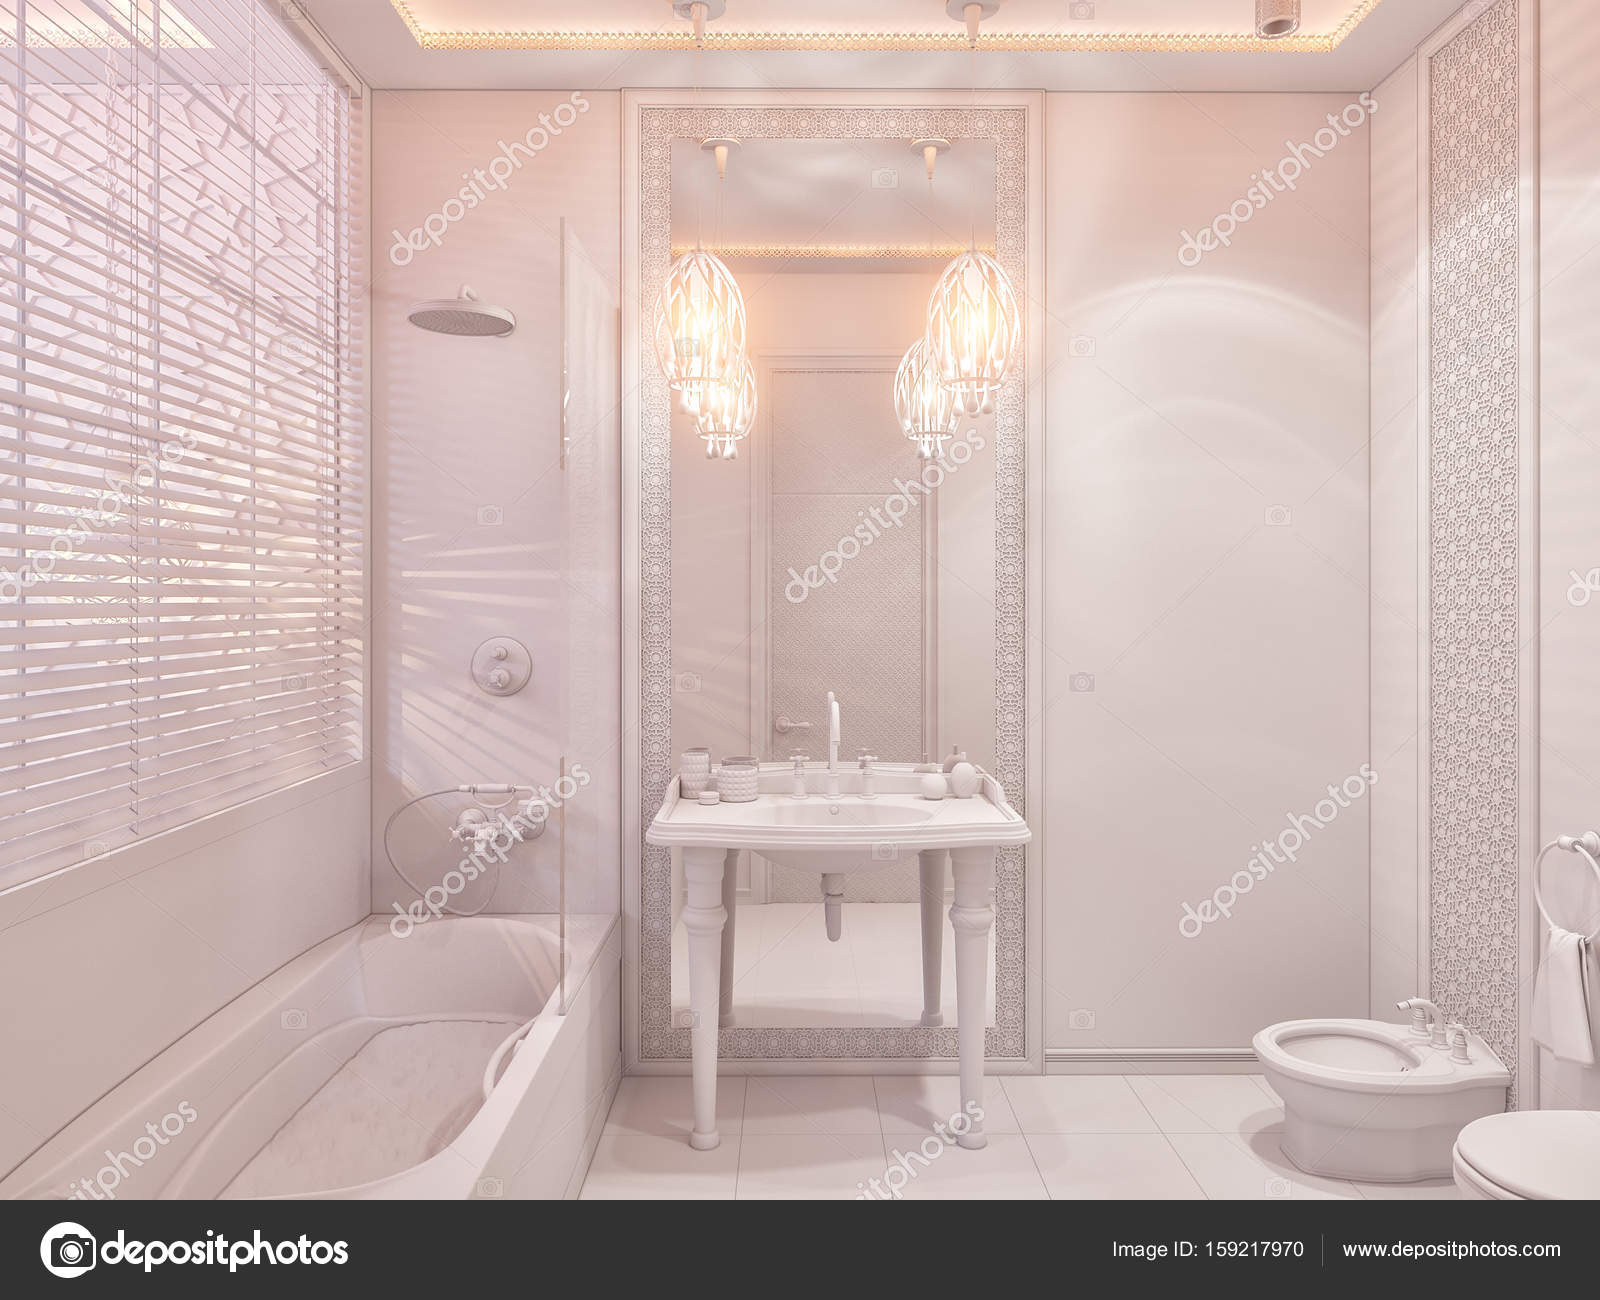 3d Render Bathroom Islamic Style Interior Design Stock Photo C Richman21 159217970